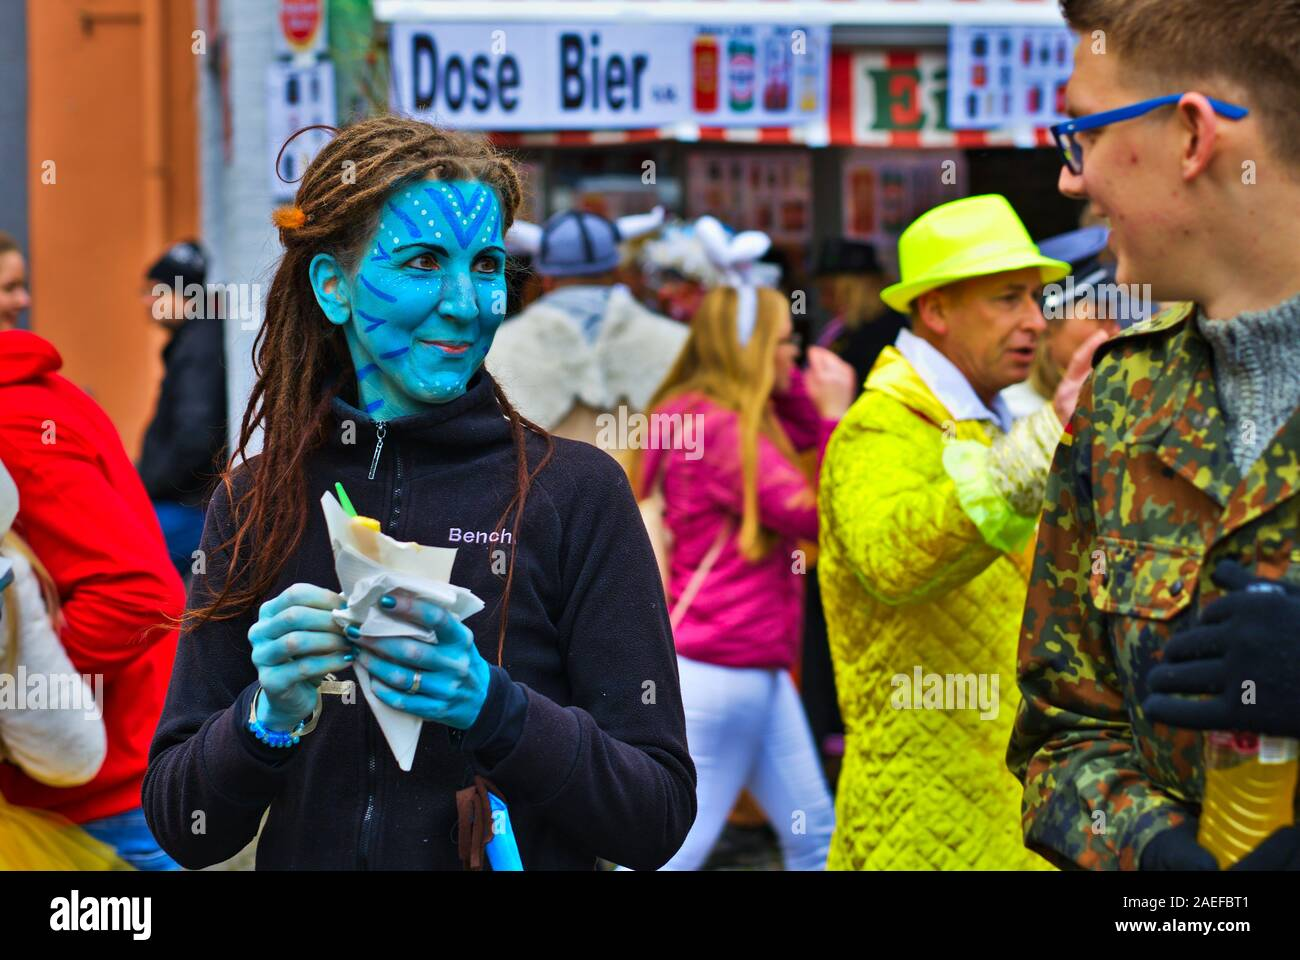 real-costumed-people-in-carnival-costume-celebrating-the-opening-of-the-2020-season-in-cologne-germany-2AEFBT1.jpg